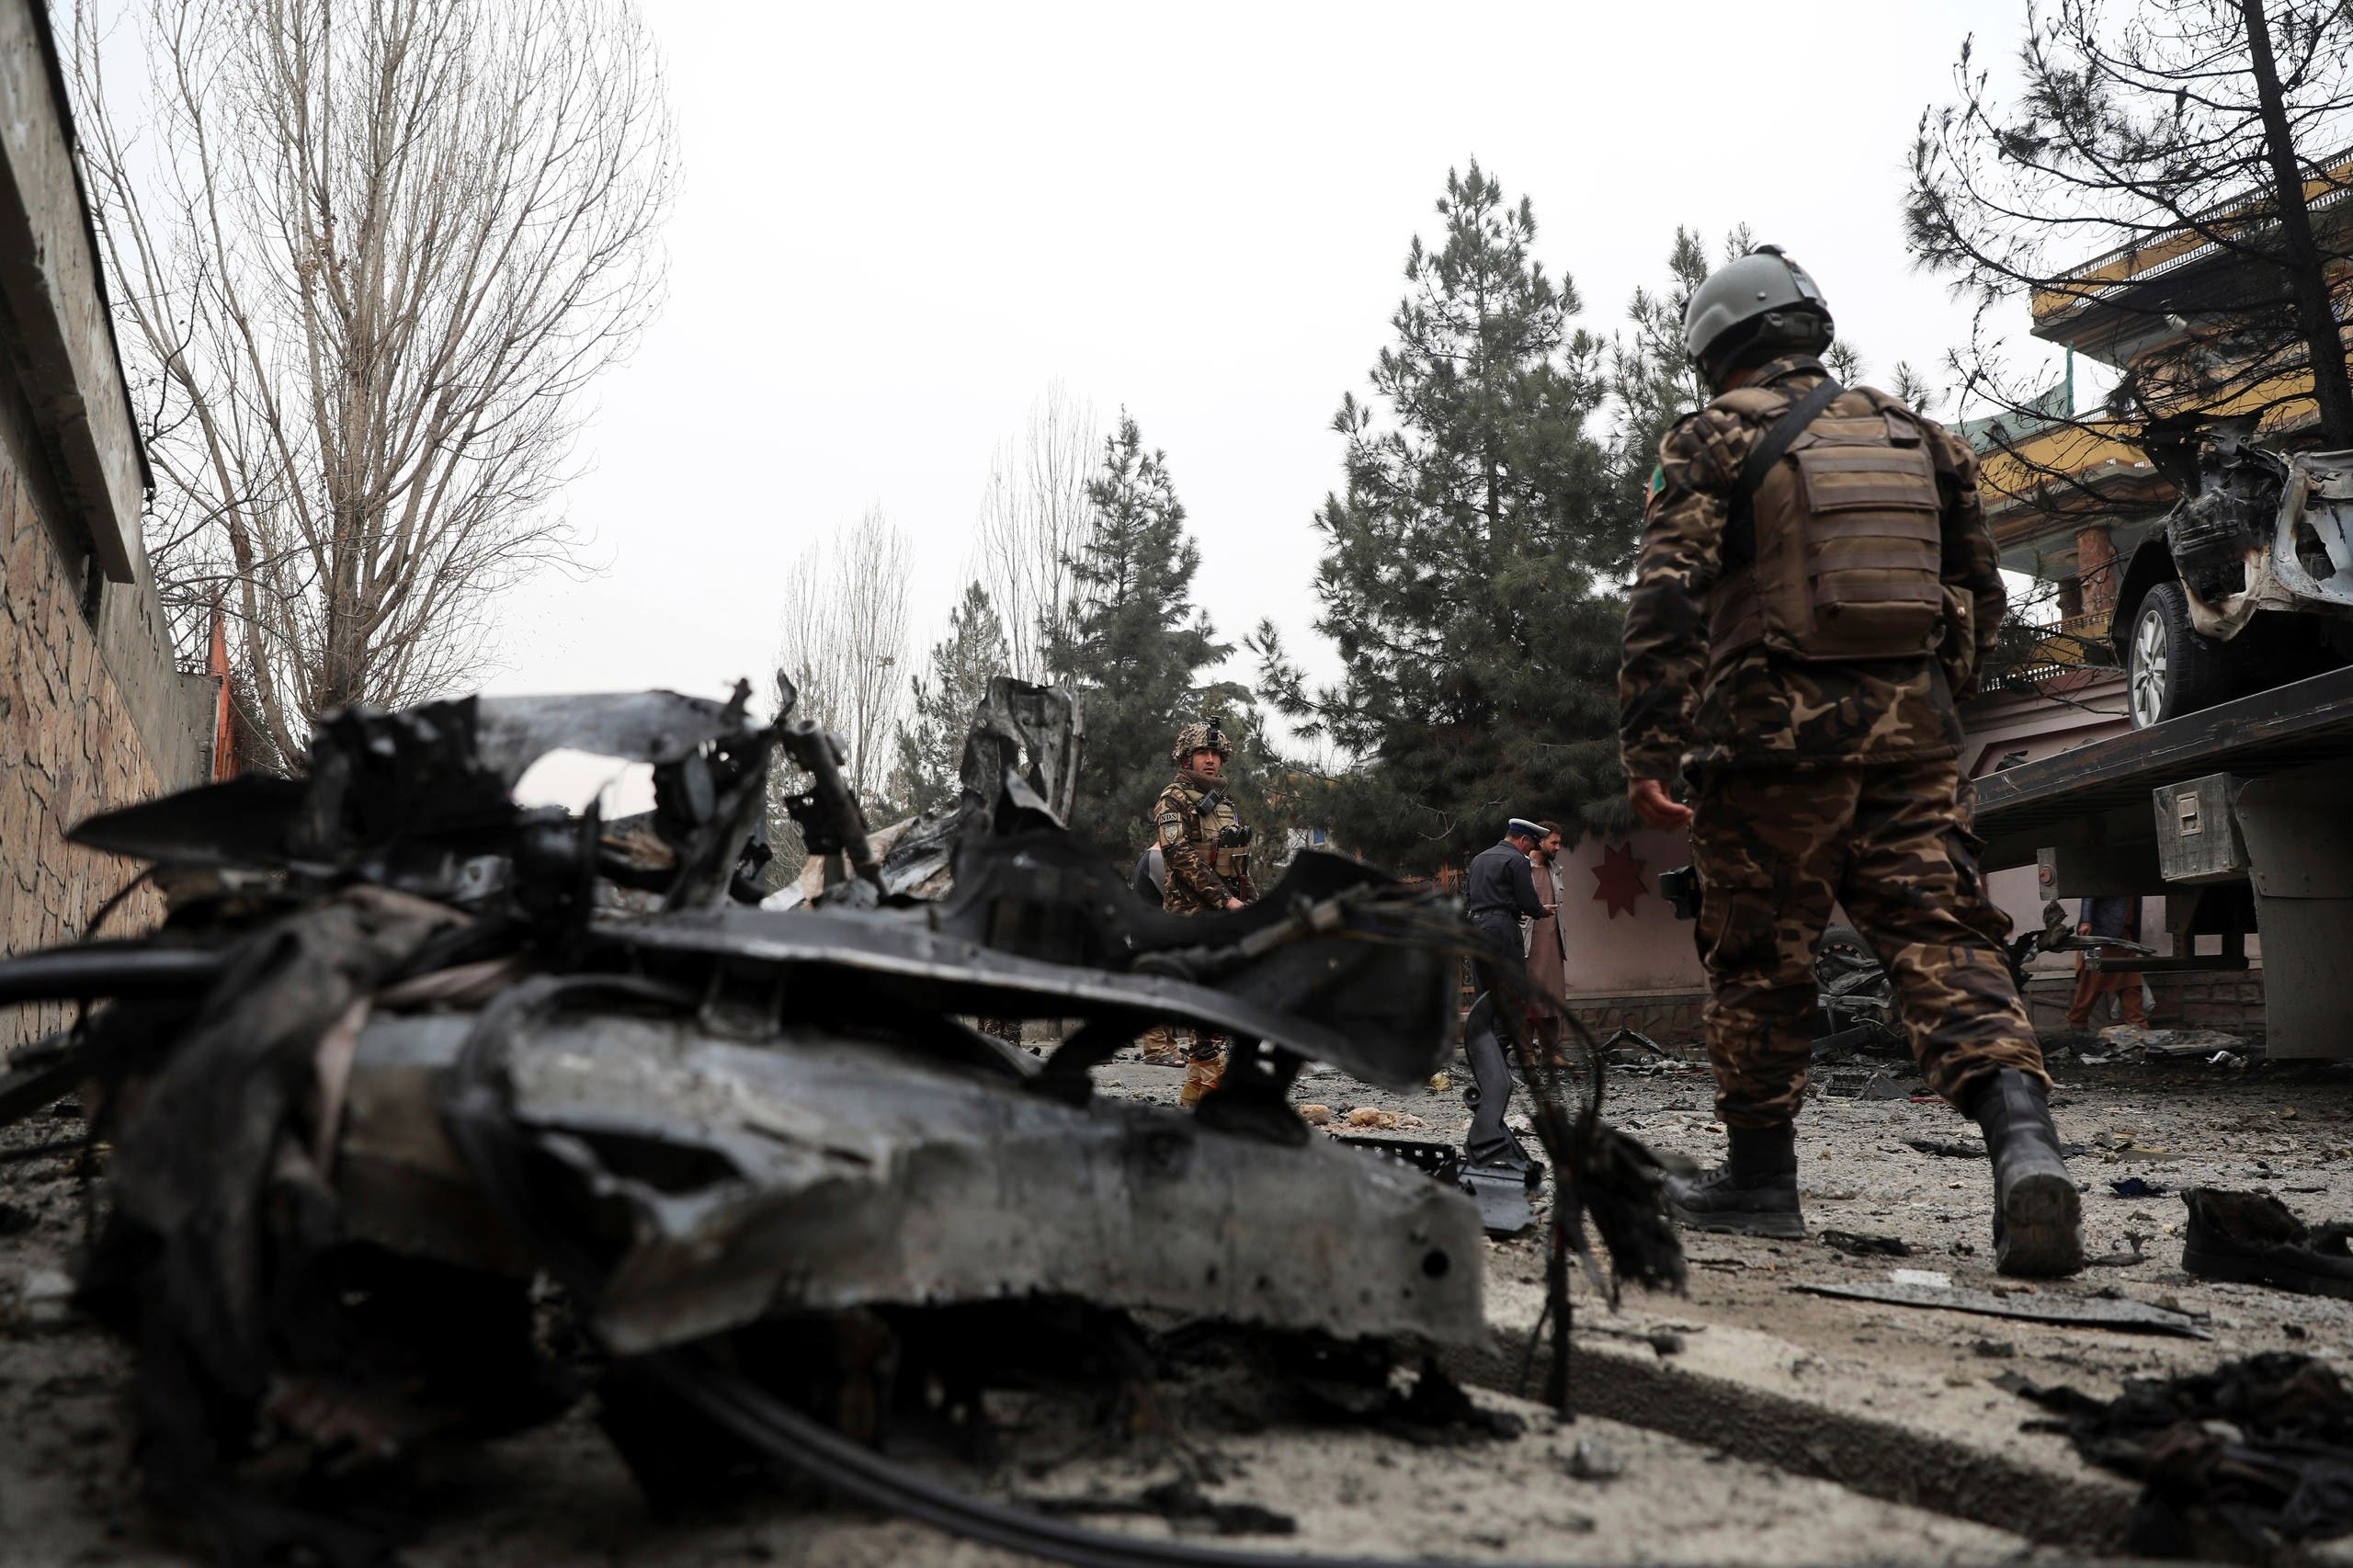 Security personnel inspect the site of a bomb attack in Kabul, Afghanistan, Saturday, Feb. 20, 2021.